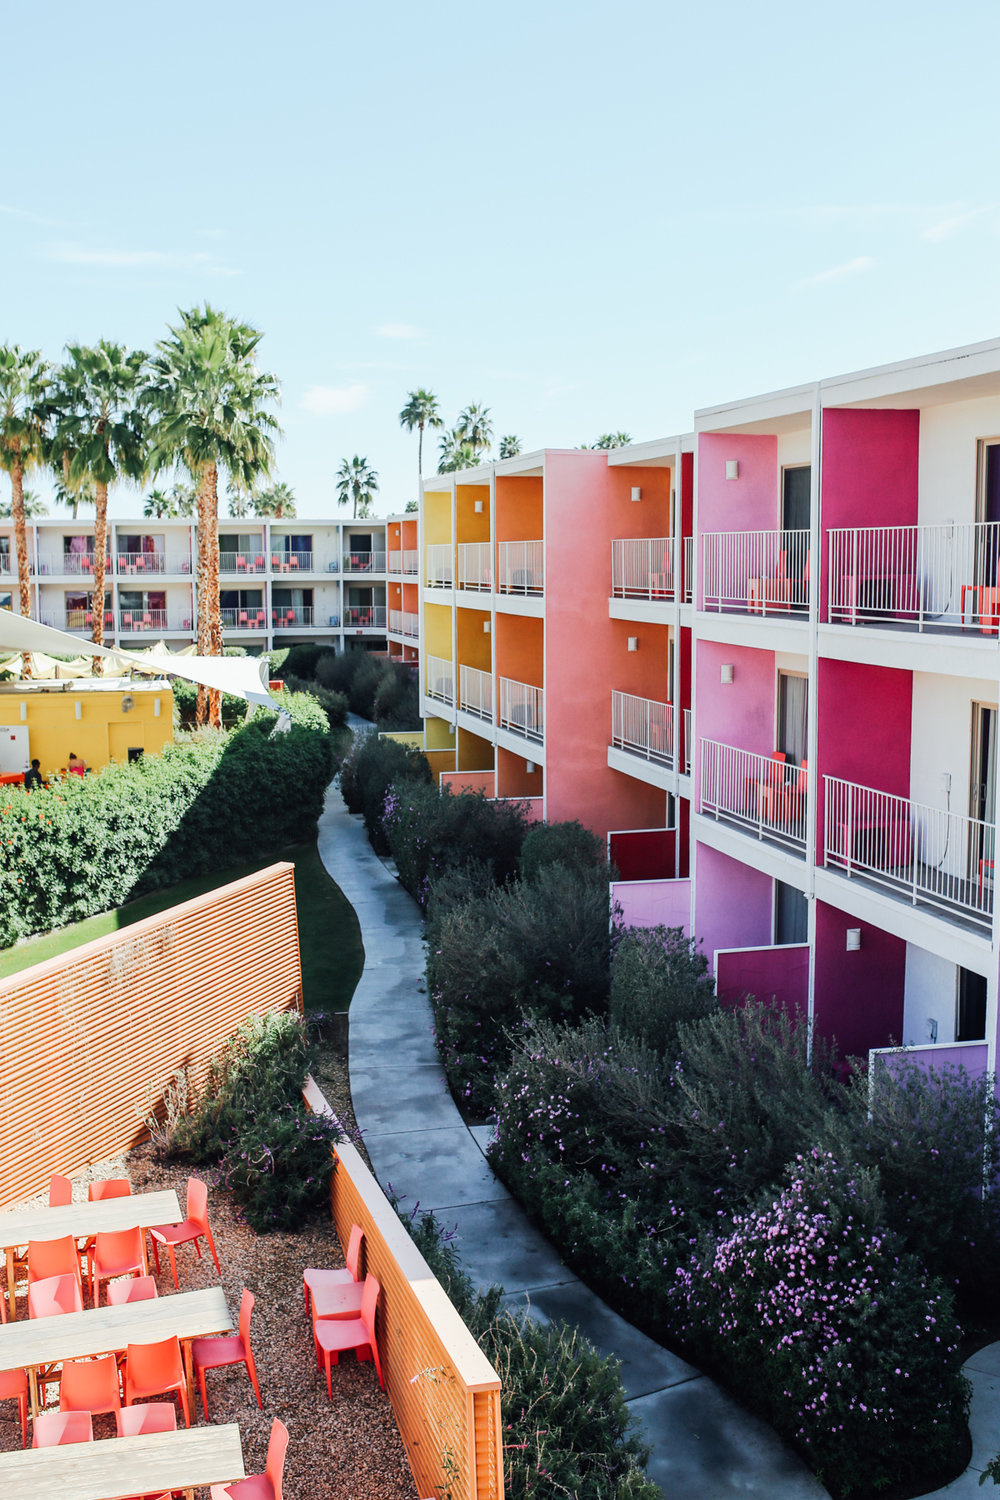 Our stay at the  Saguaro  injected the vibrancy of what Palms Spring might have been in the 20's. There's about 12 colors that fill your visual senses and it's pure joy!